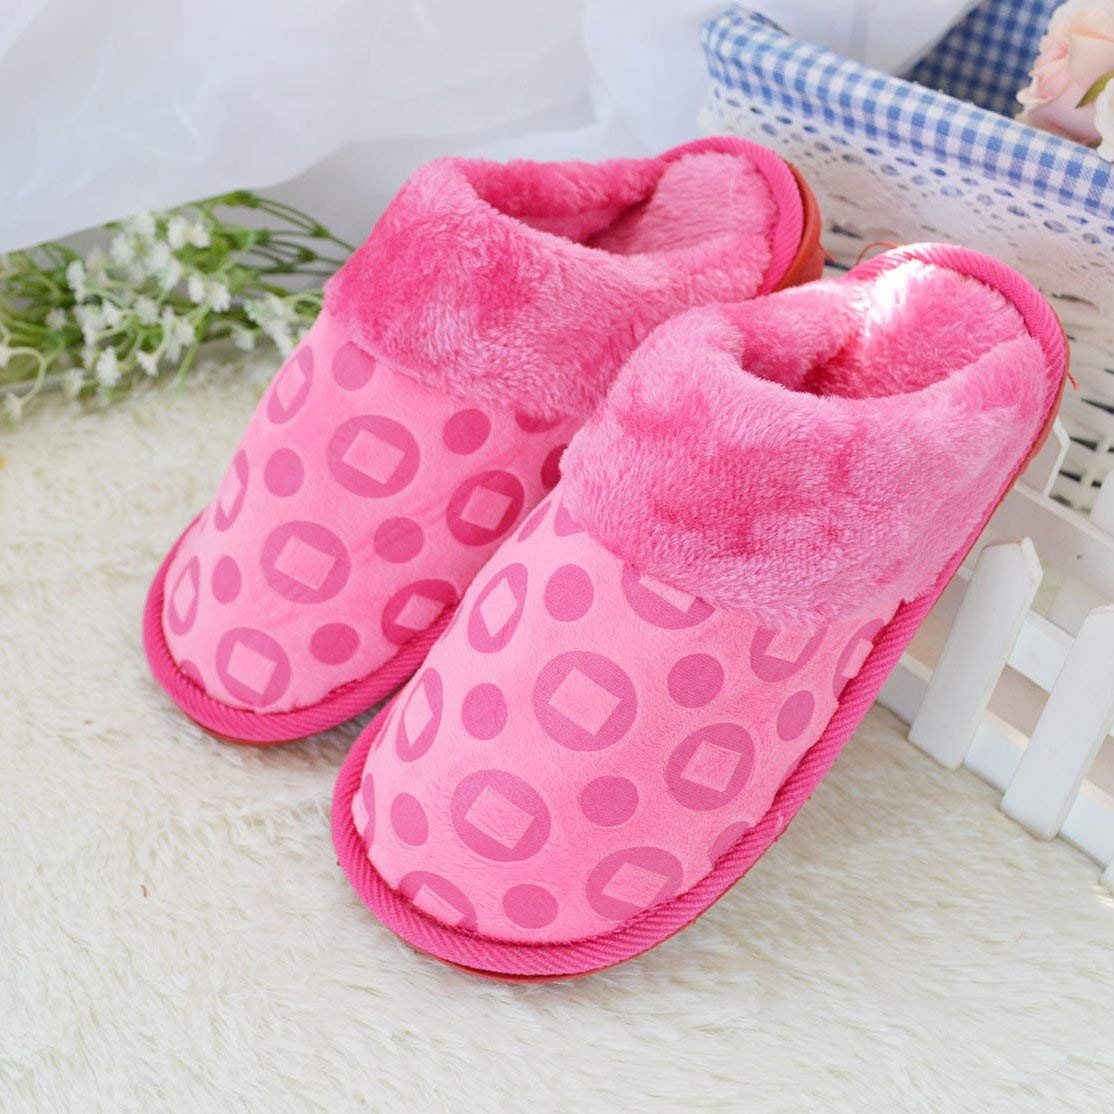 1 JaHGDU Women 's Home Cotton Slippers Indoor Keep Warm Casual Slippers orange Mixed color Personality Quality Pink for Women